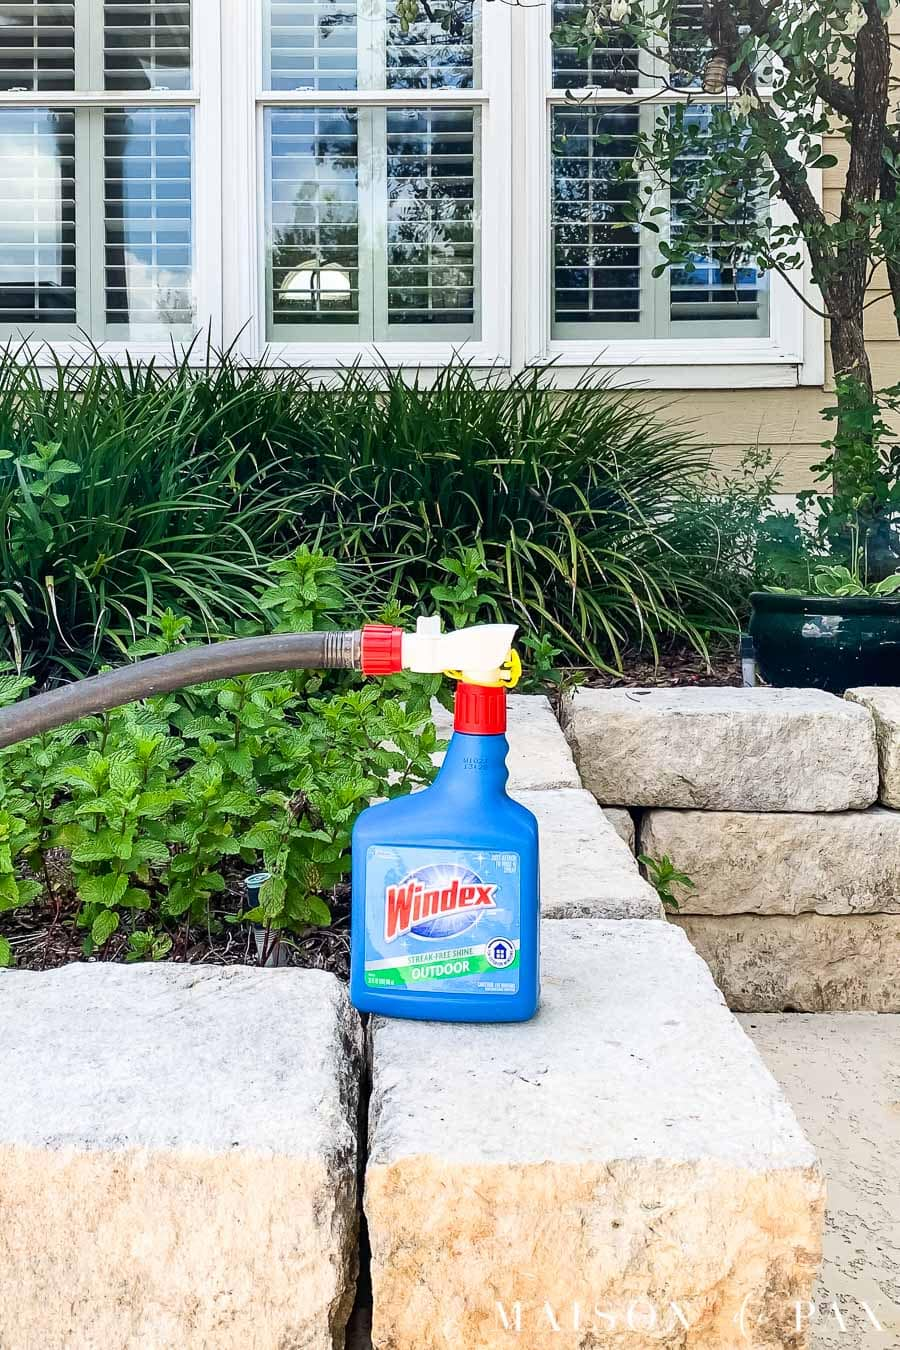 windows outdoor spray bottle attached to hose | Maison de Pax